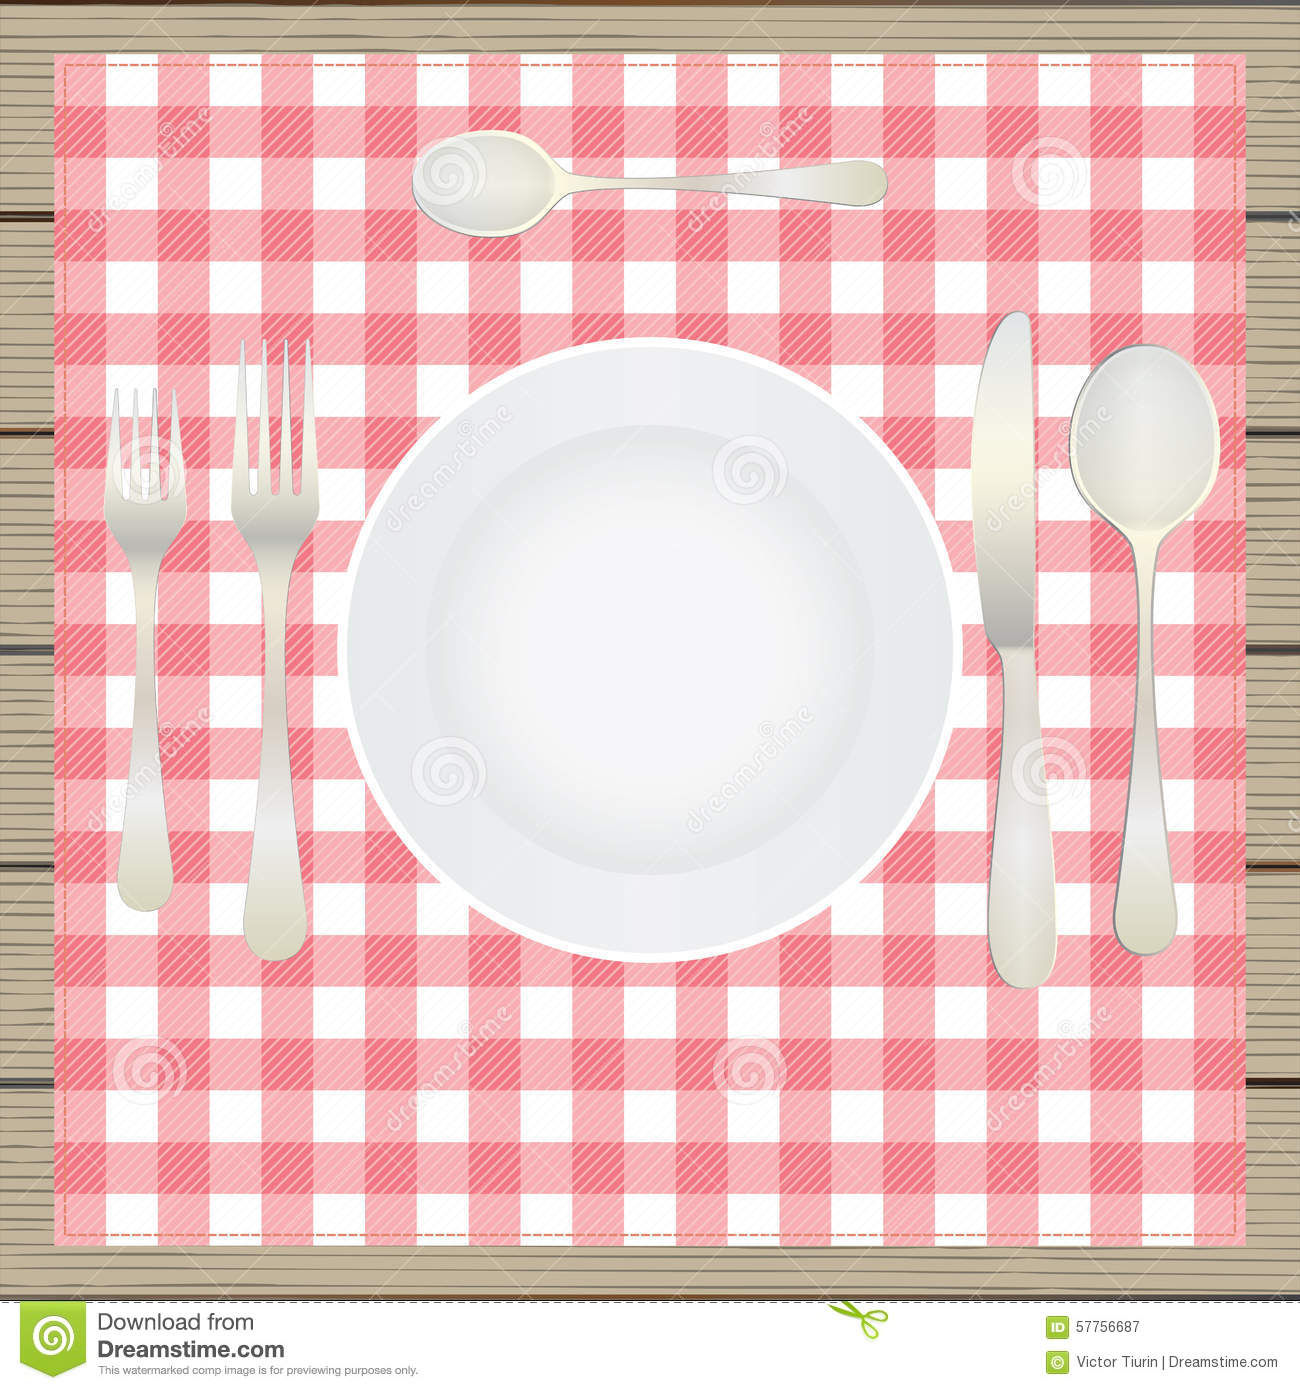 Table setting etiquette plate fork spoon knife table for Place setting images